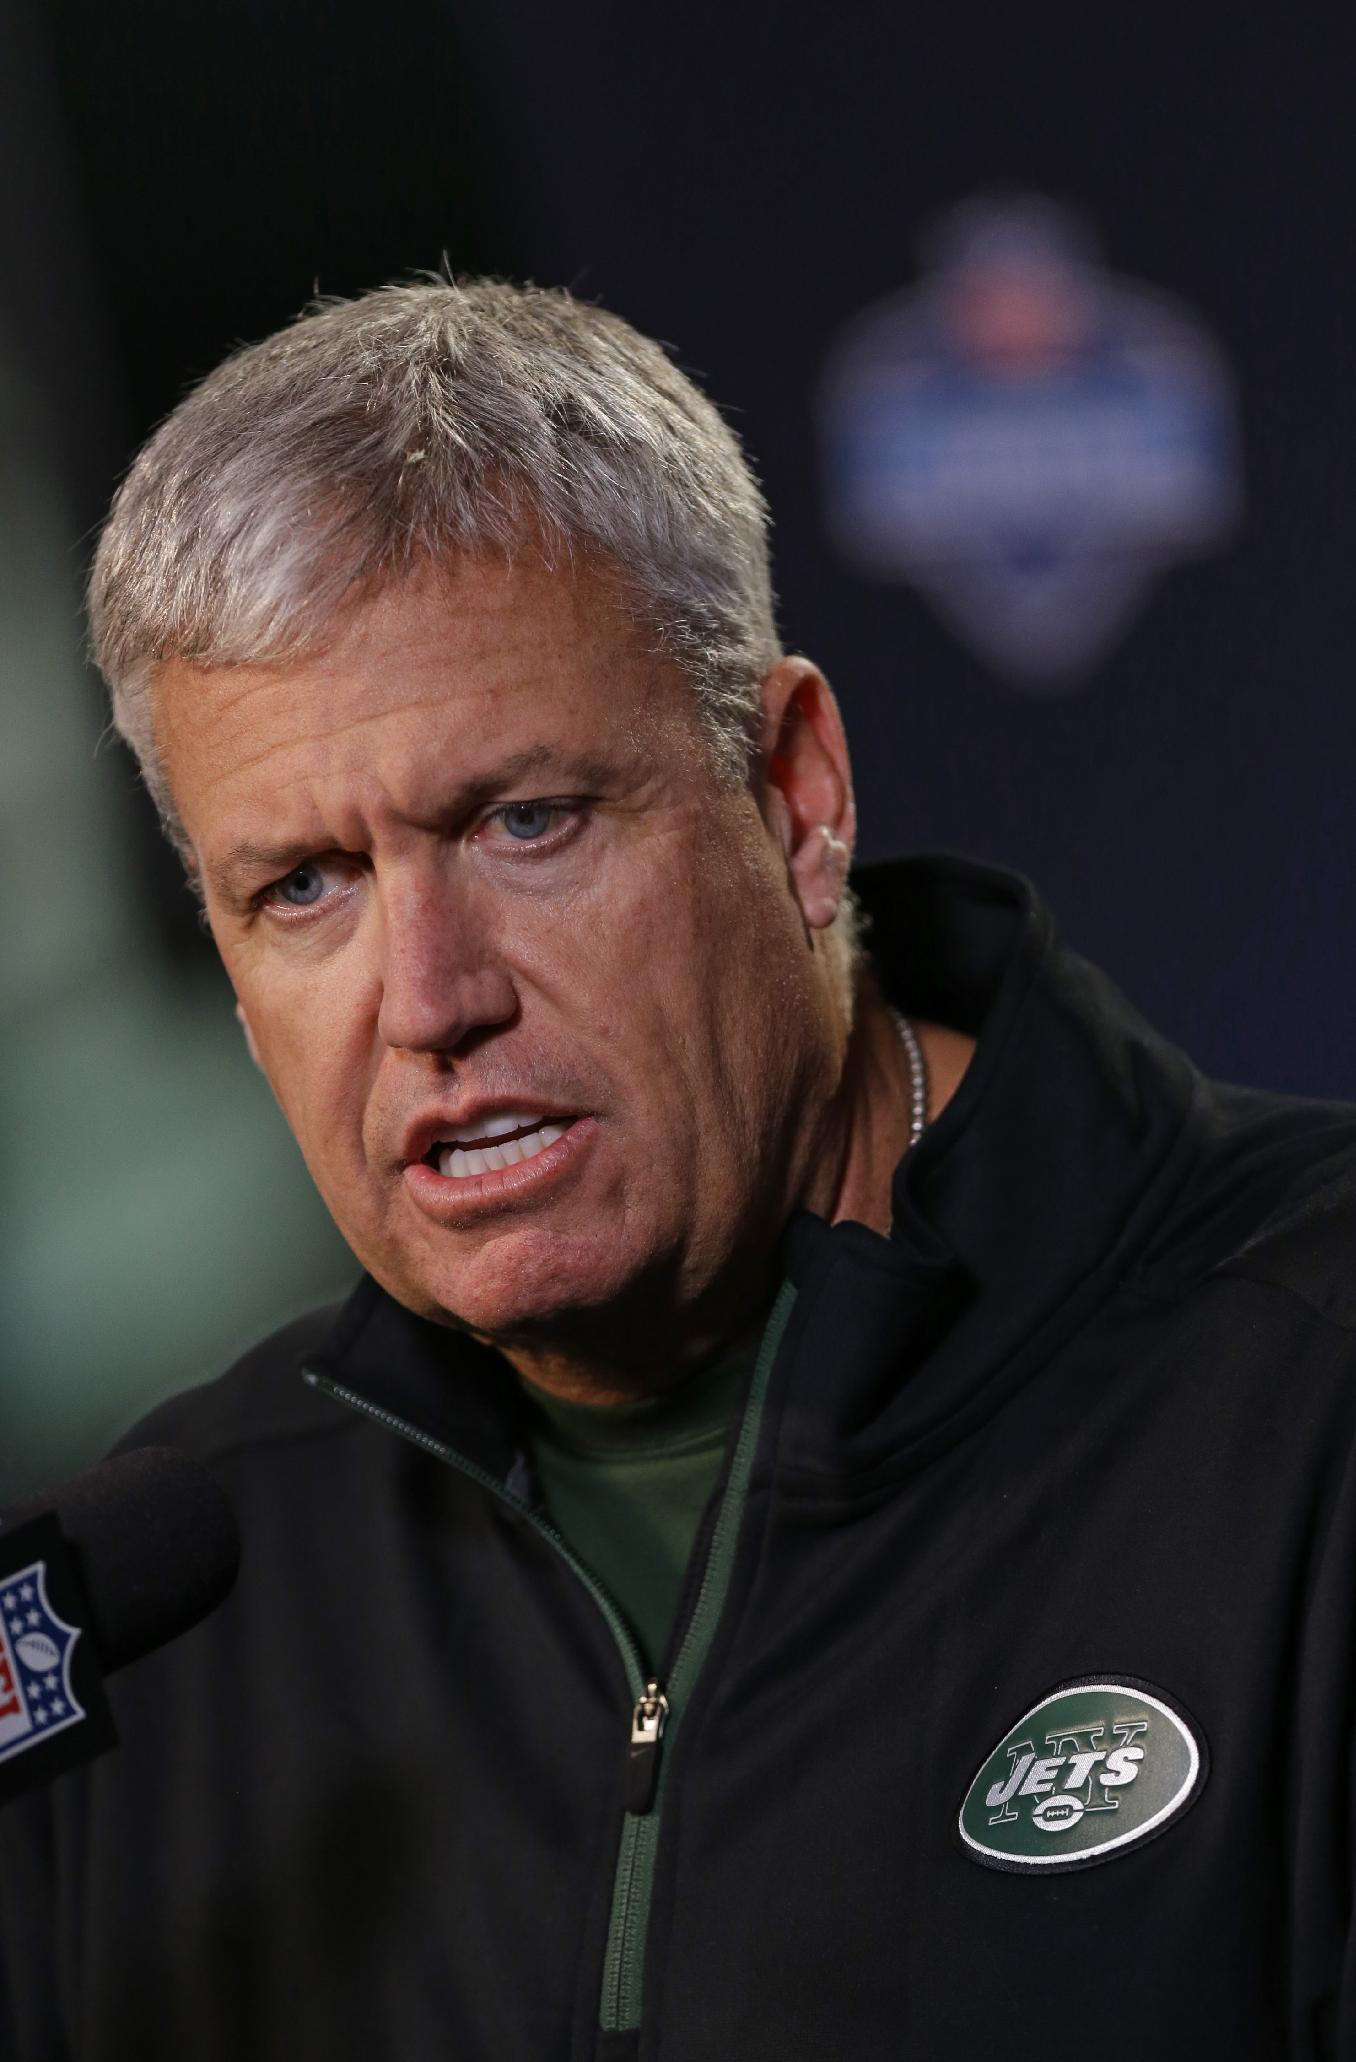 New York Jets head coach Rex Ryan answers a question during a news conference at the NFL football scouting combine in Indianapolis, Thursday, Feb. 20, 2014